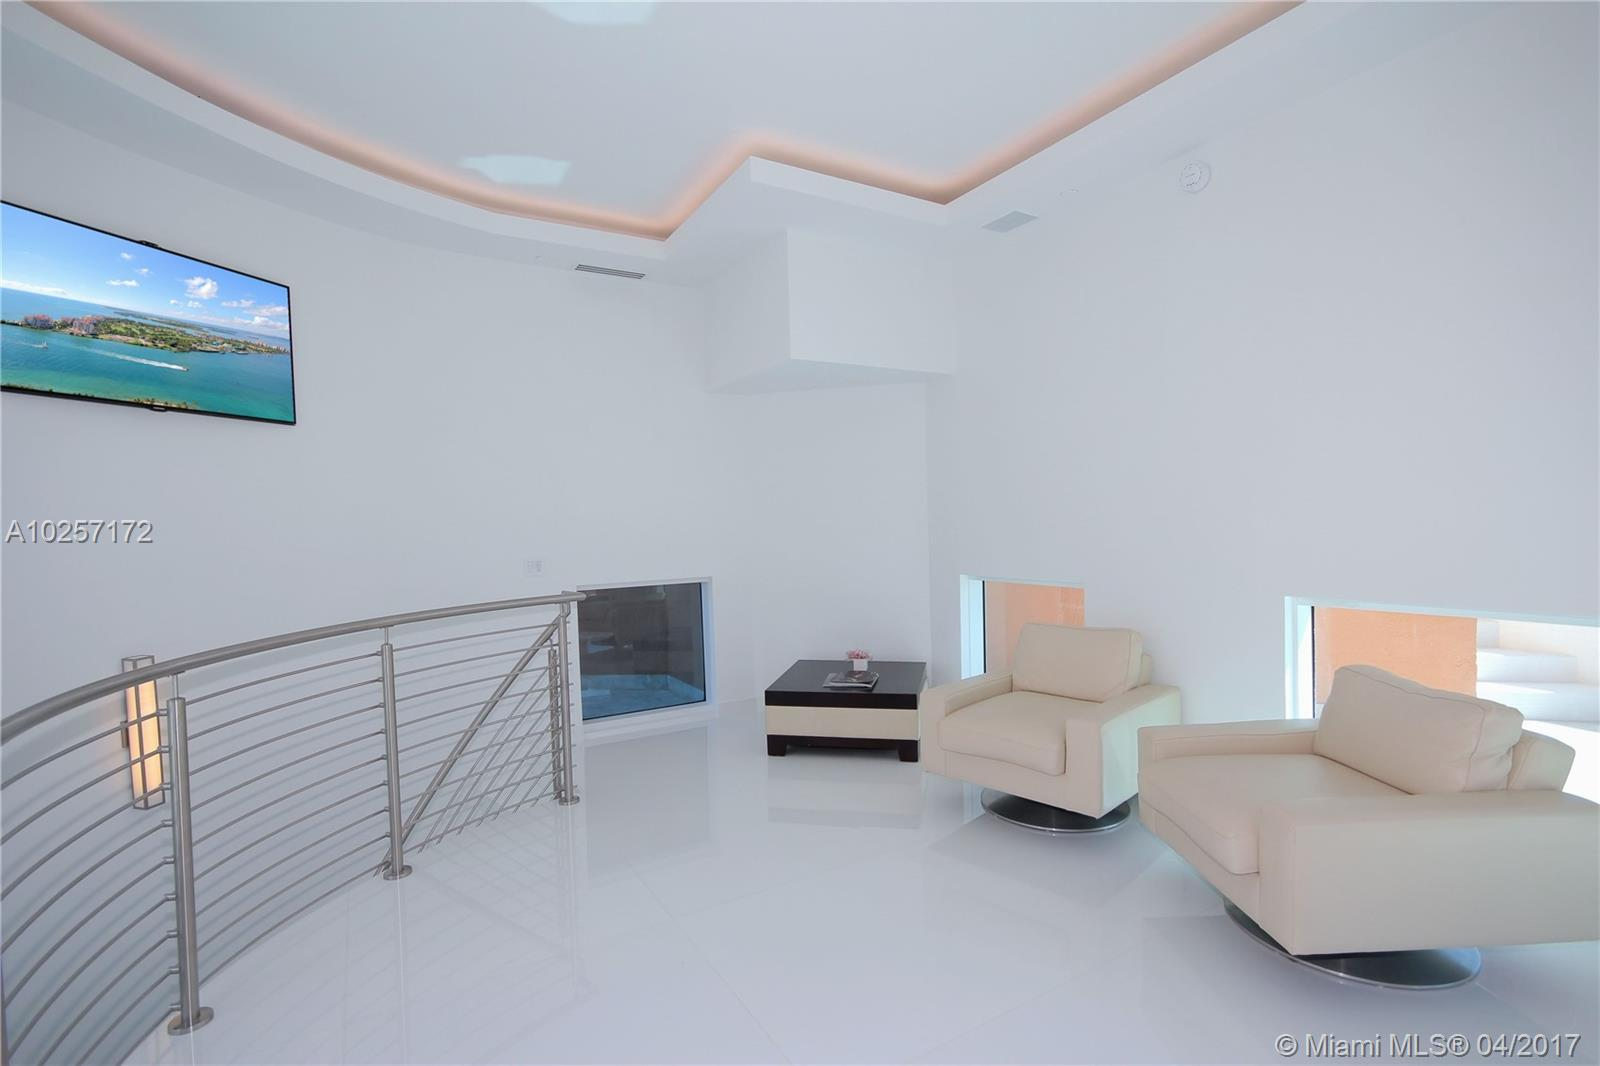 300 Pointe dr-LPH2 miami-beach--fl-33139-a10257172-Pic23